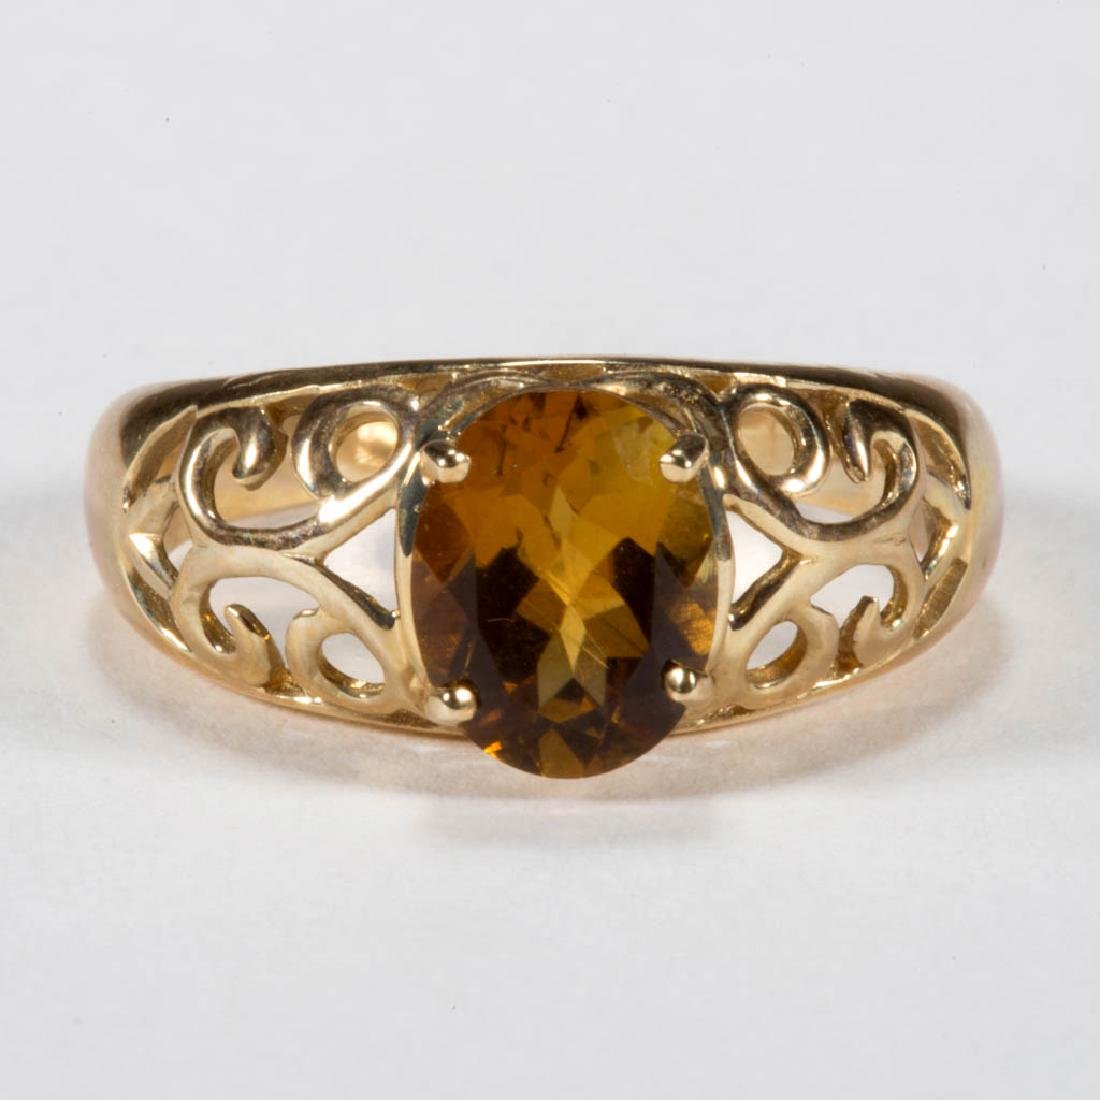 VINTAGE 14K GOLD AND YELLOW TOURMALINE LADY'S RING